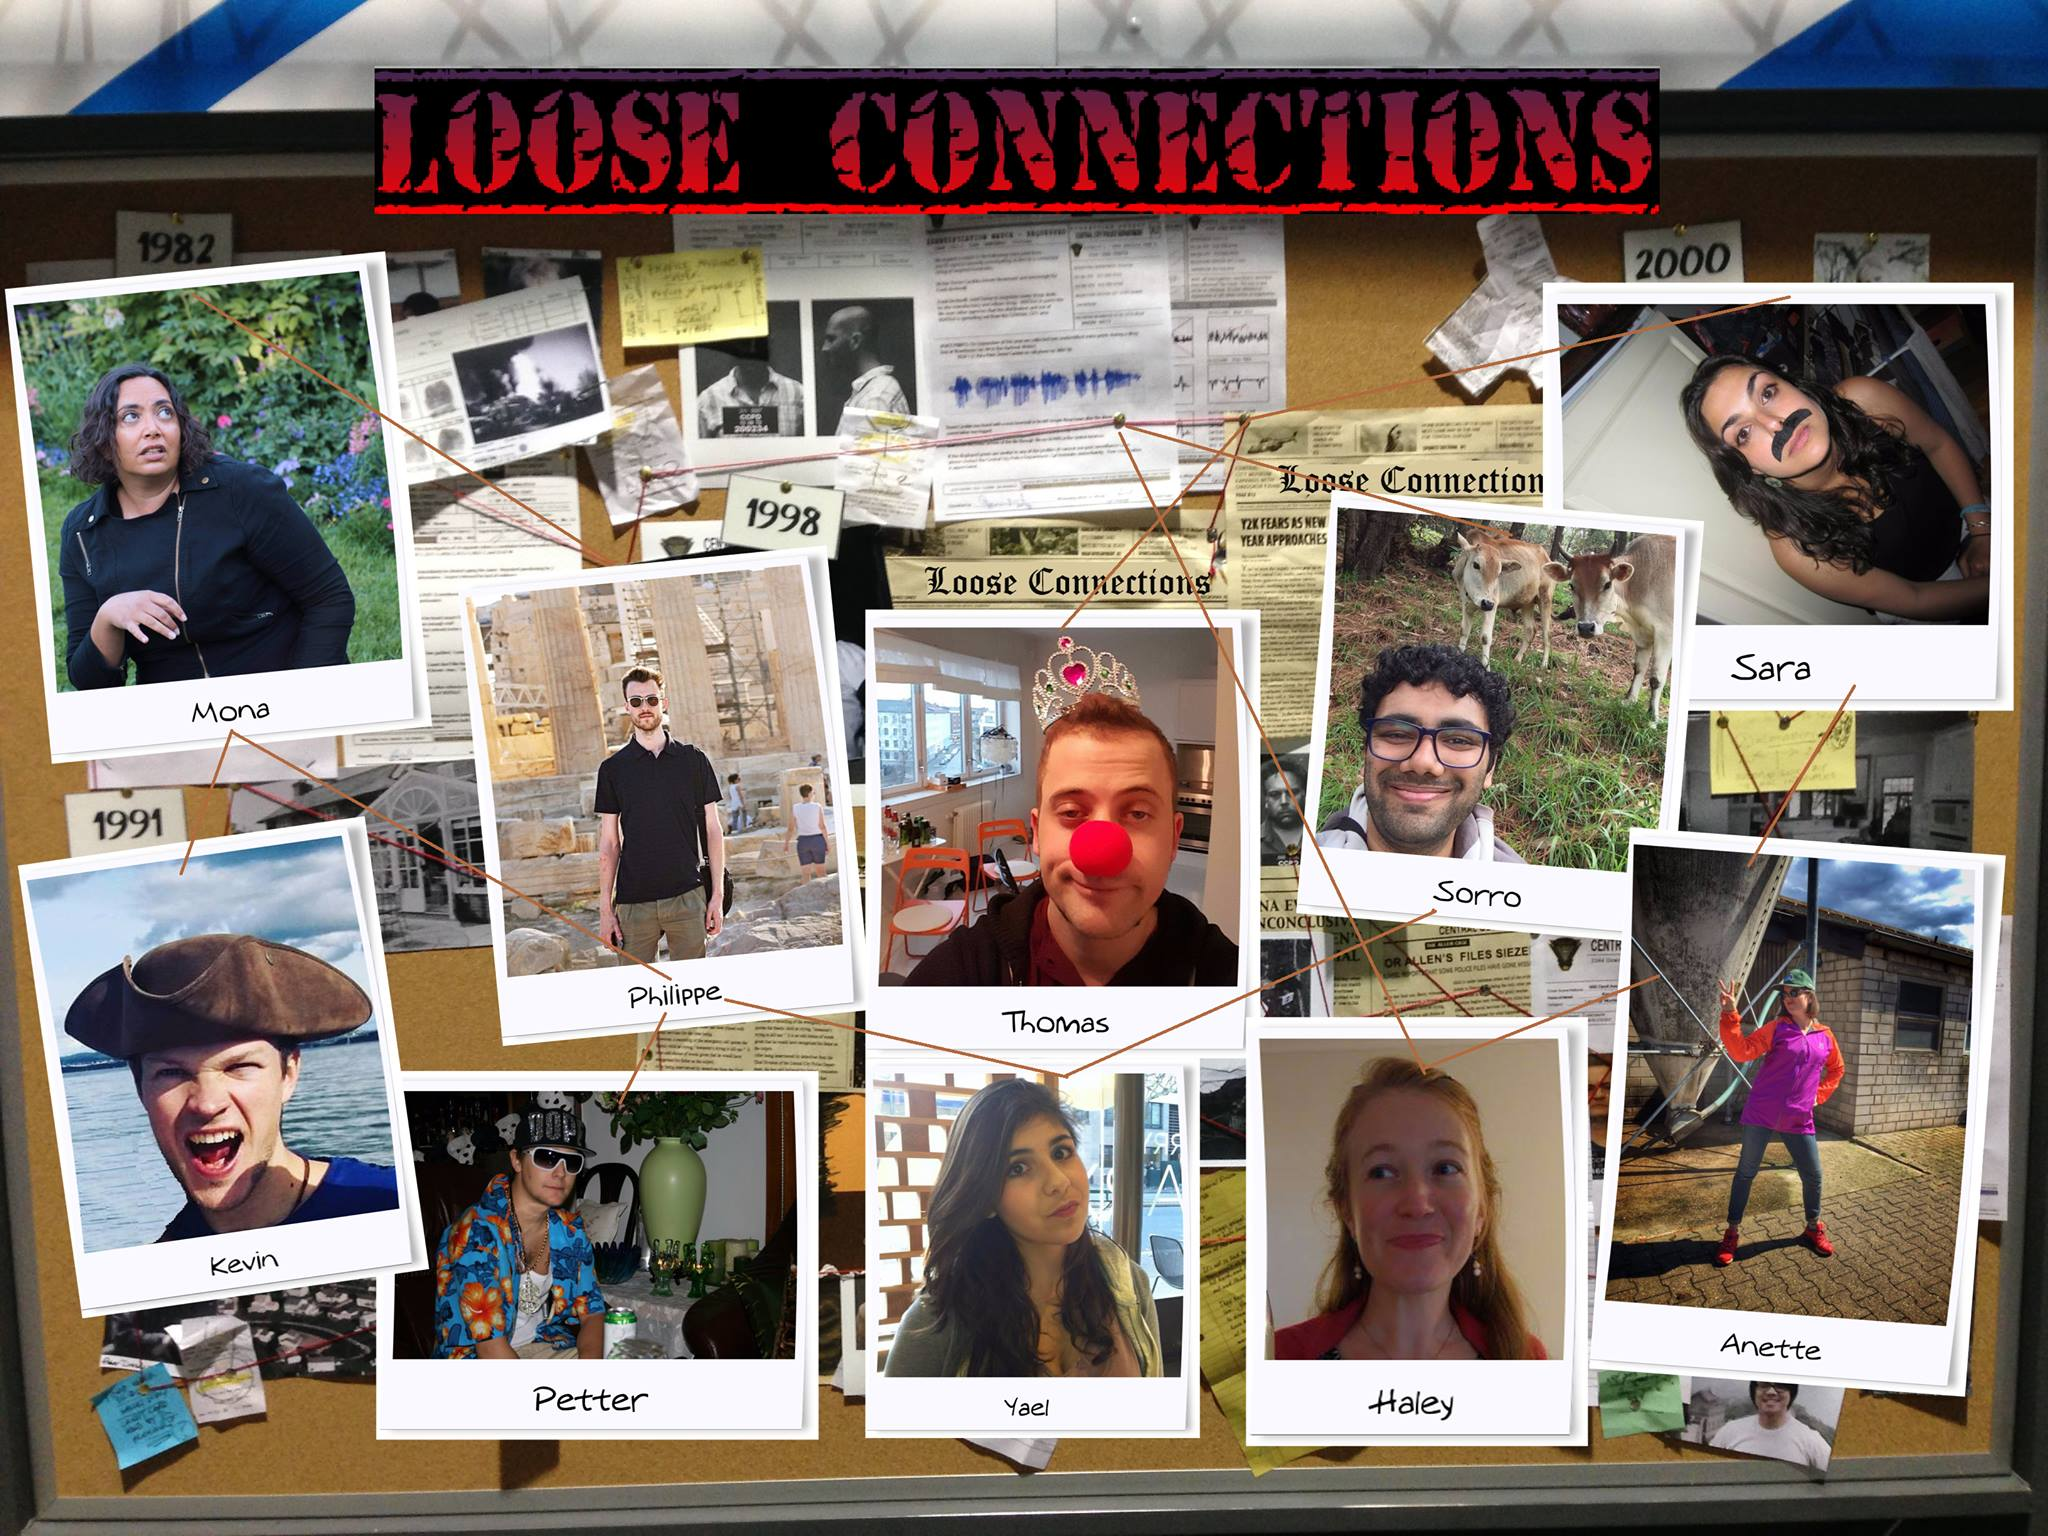 17:30 LOOSE CONNECTIONS